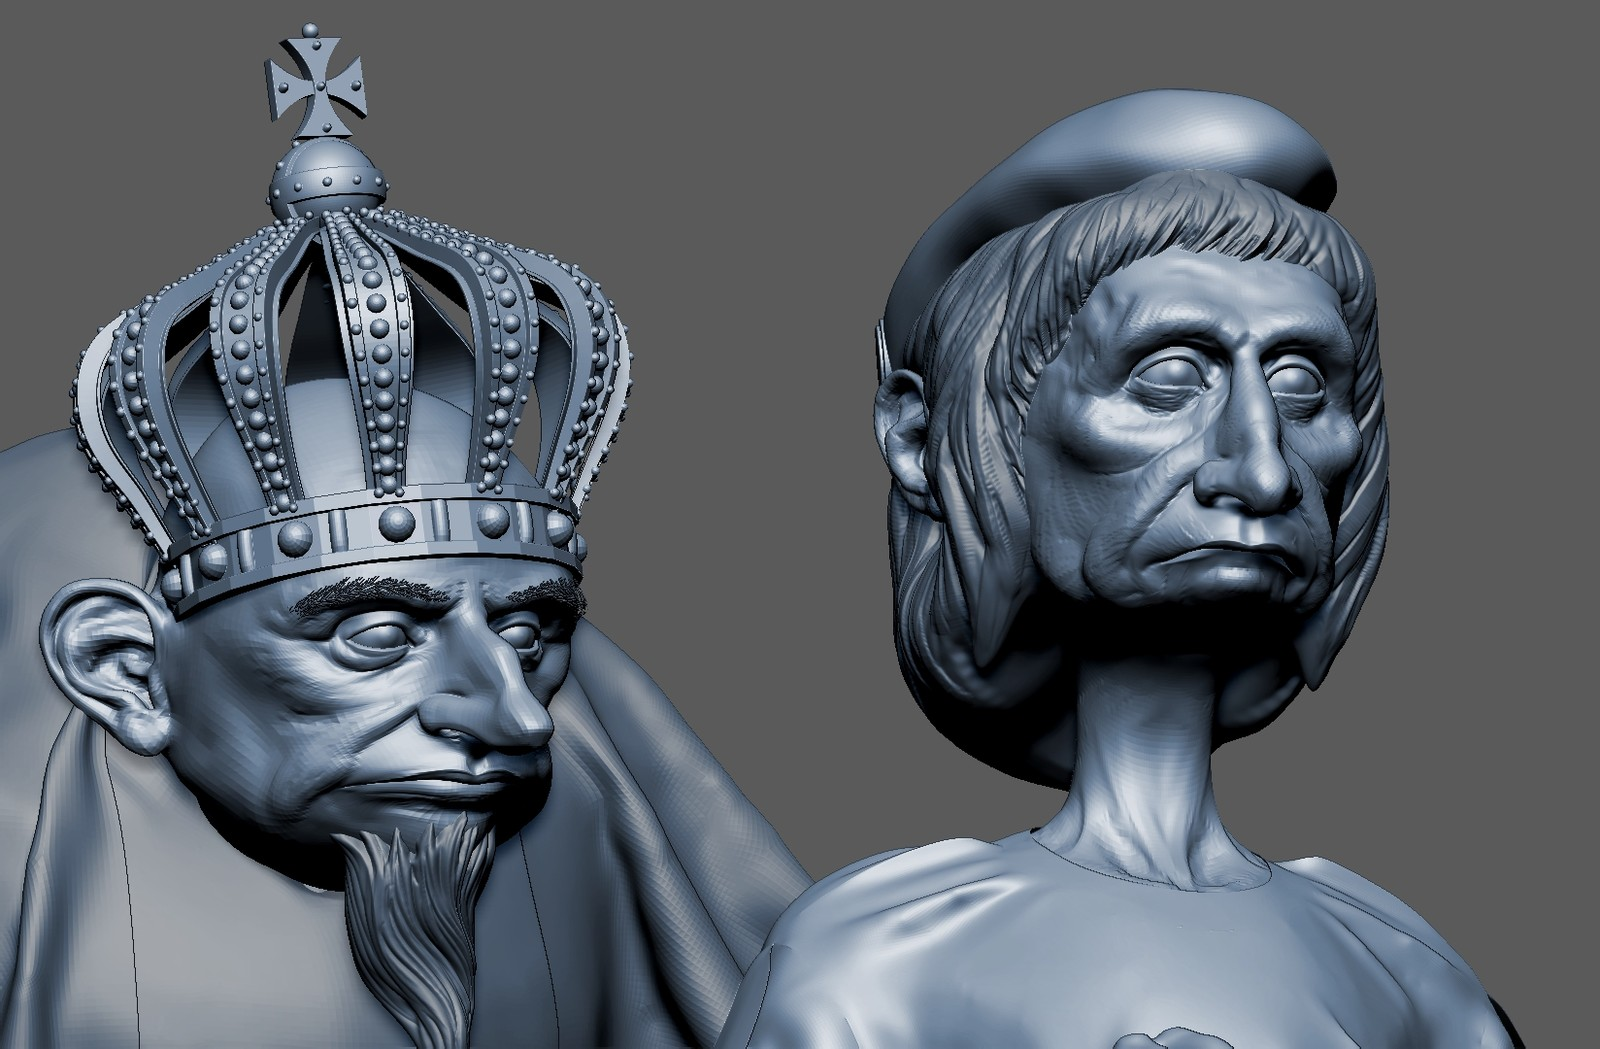 WIP of a 3 character scene king queen and servant